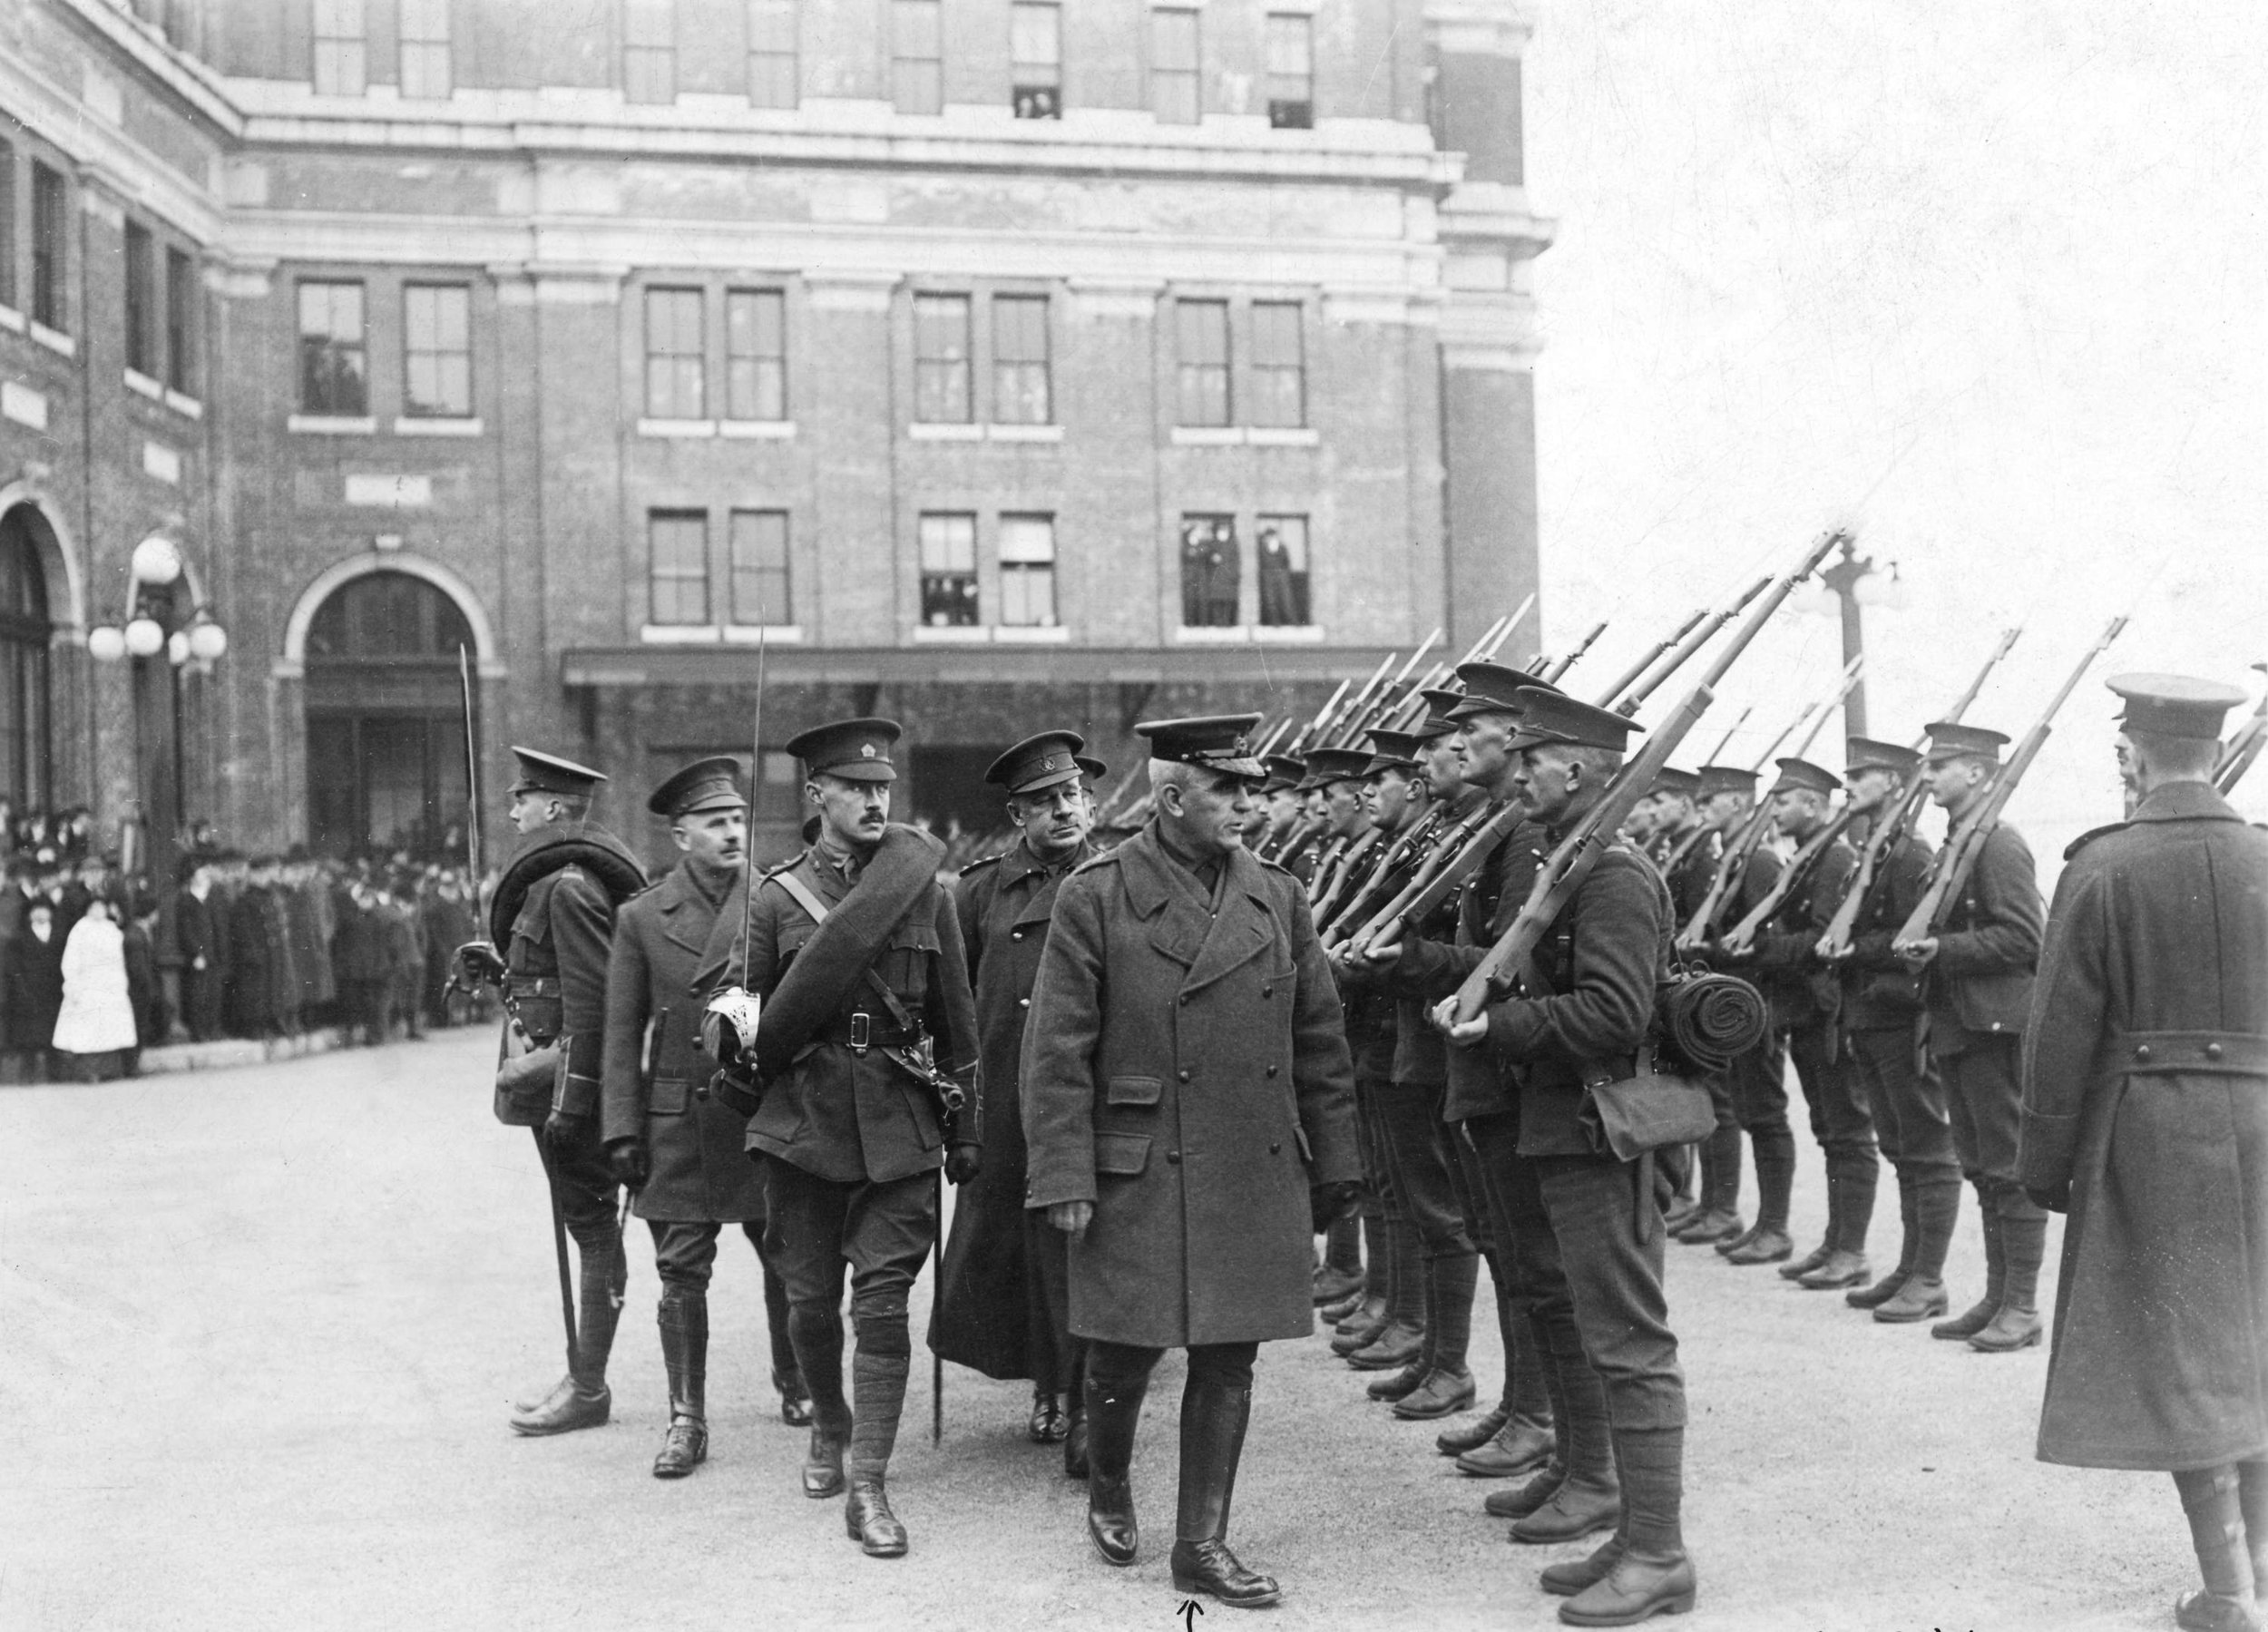 An honour guard at the Canadian Pacific Railway station greeting General Sir Sam Hughes, Minister of the Militia, near the start of the war. (stuart thomson, city of vancouver archives)